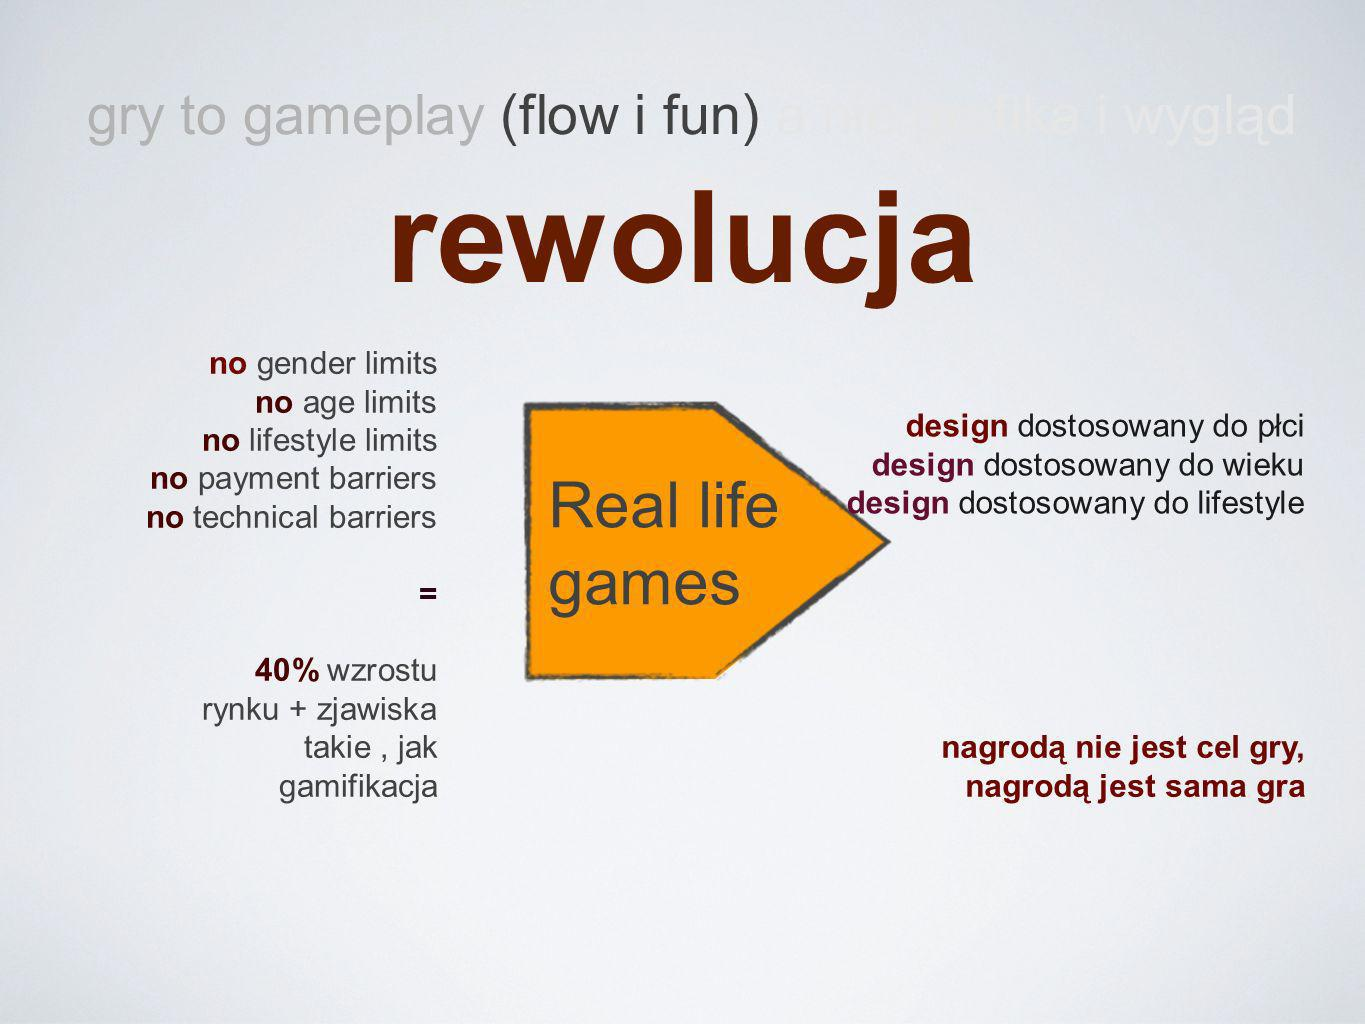 gry to gameplay (flow i fun) a nie grafika i wygląd